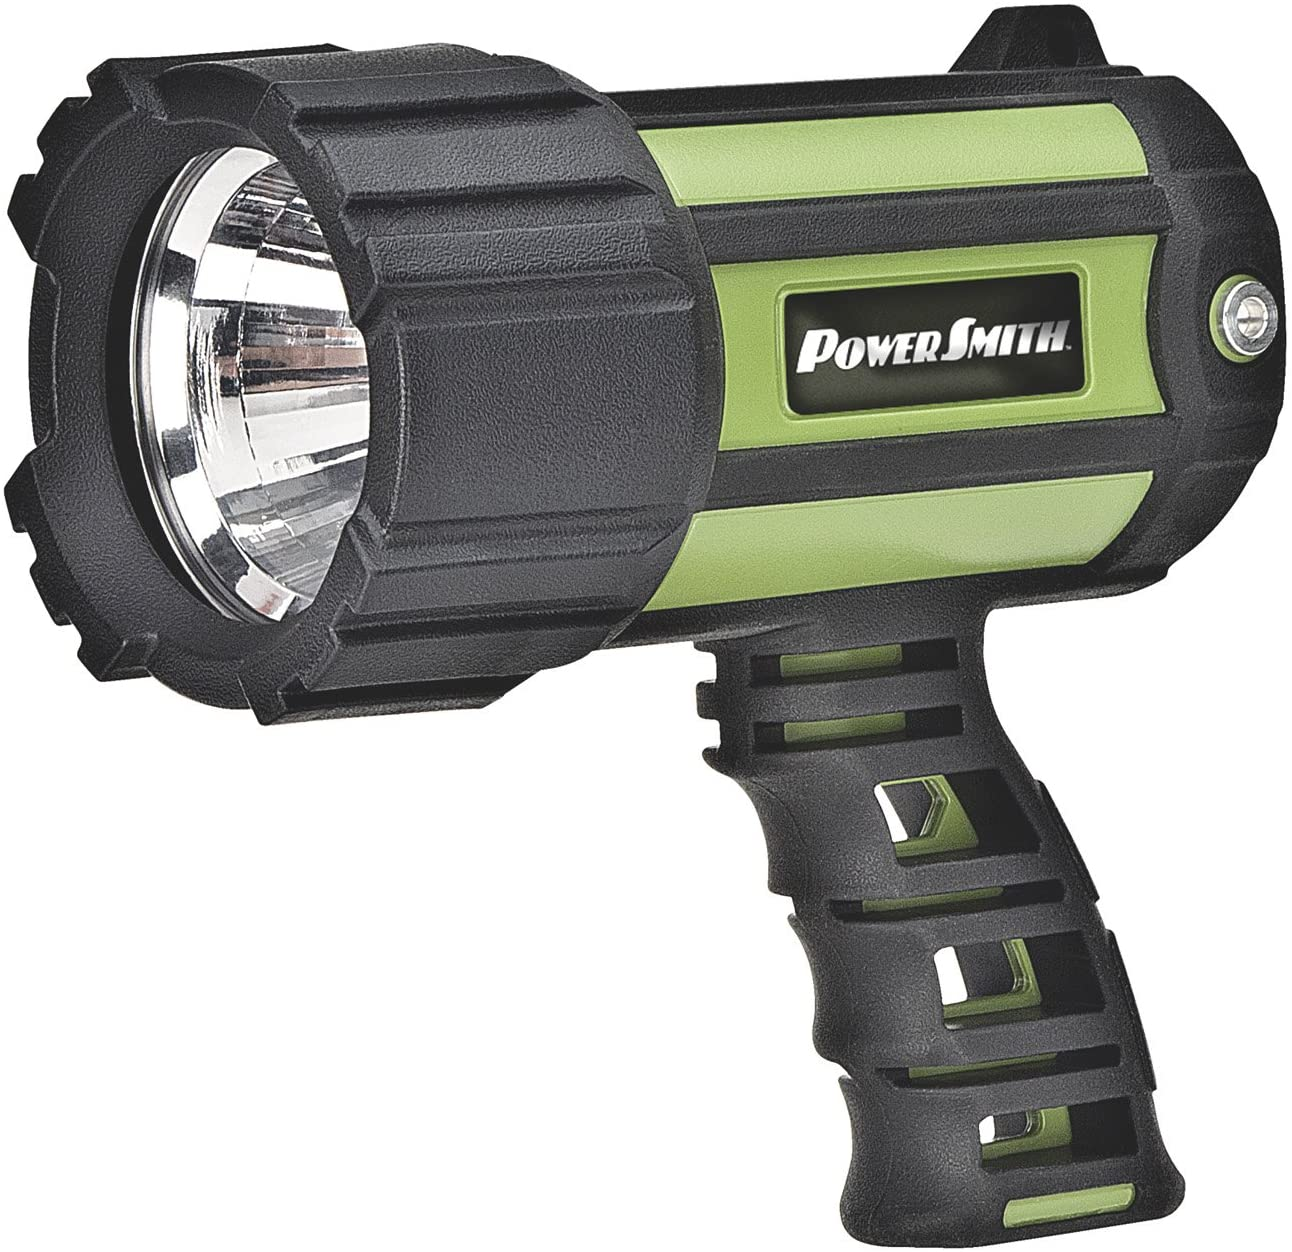 PowerSmith PSL10700W 700 Lumen Floatable Waterproof Rechargeable Lithium-Ion Battery-Powered LED Spotlight Flashlight with Ergonomic Handle and Charger